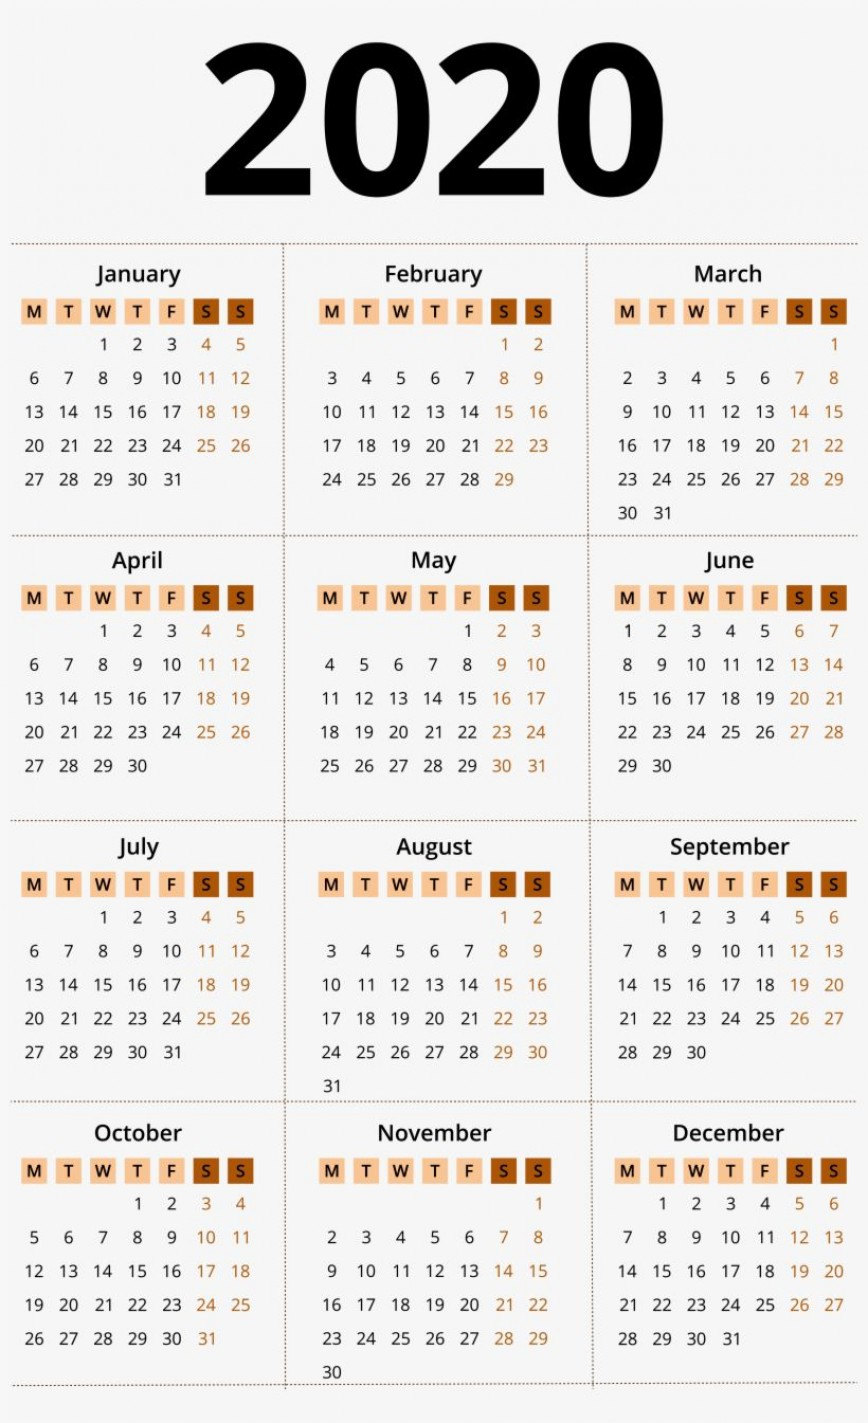 000 Unique Payroll Calendar Template 2020 Inspiration  Free Biweekly Excel